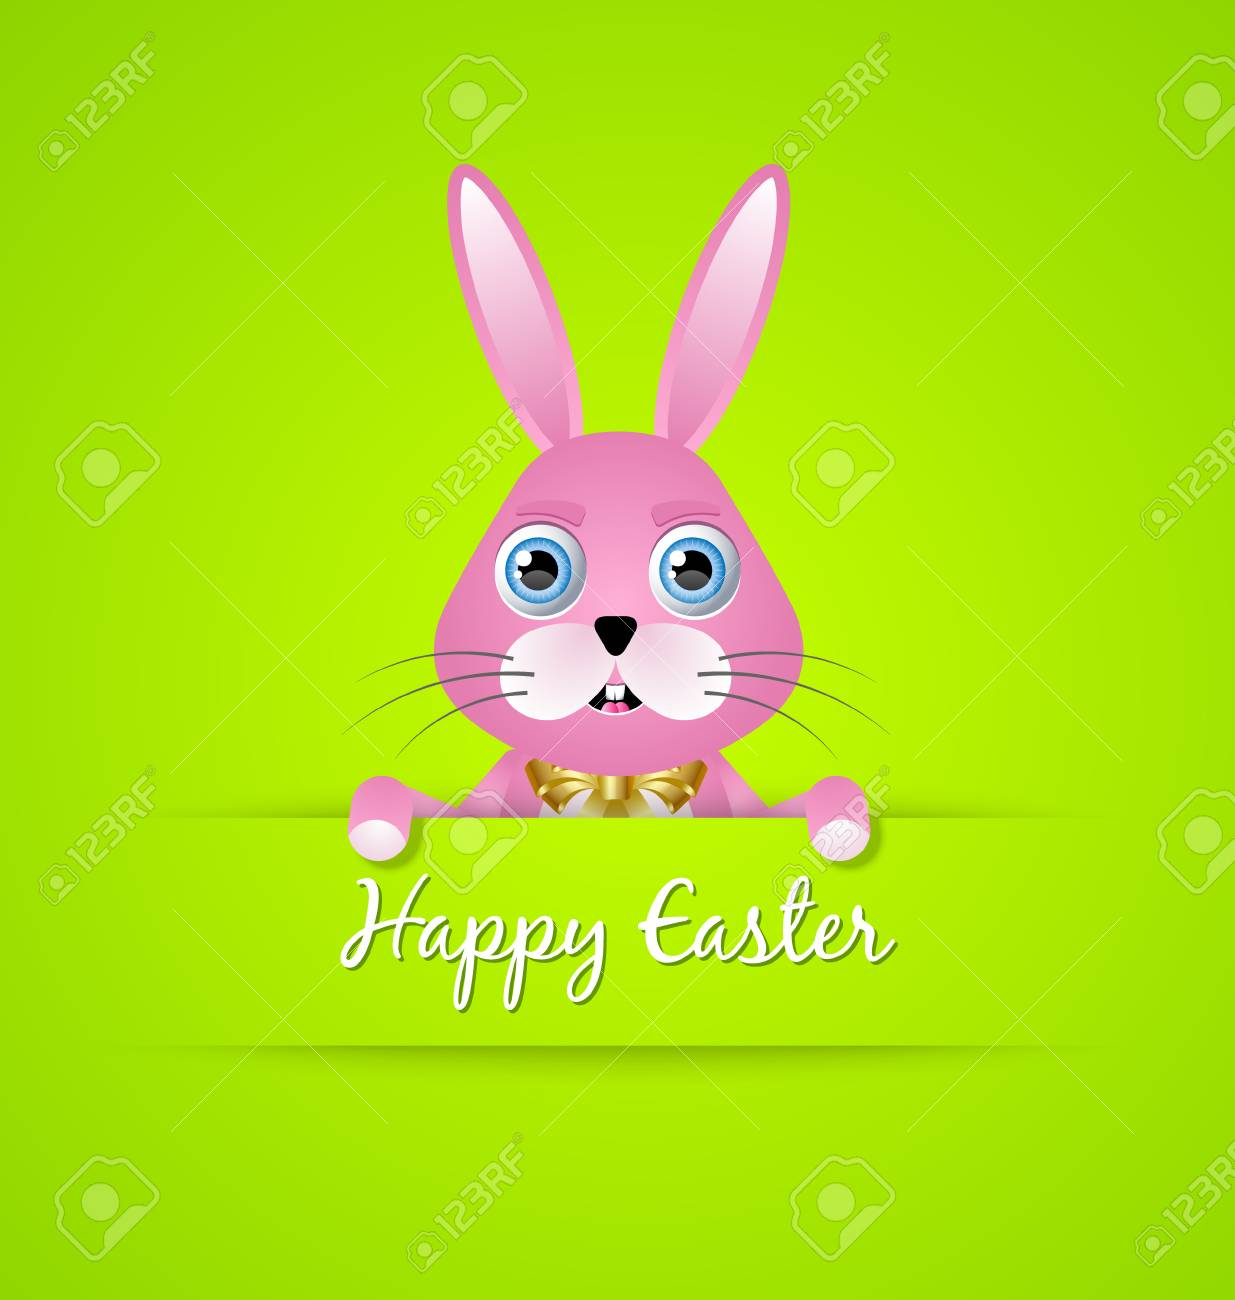 happy easter card template with pink bunny on green background